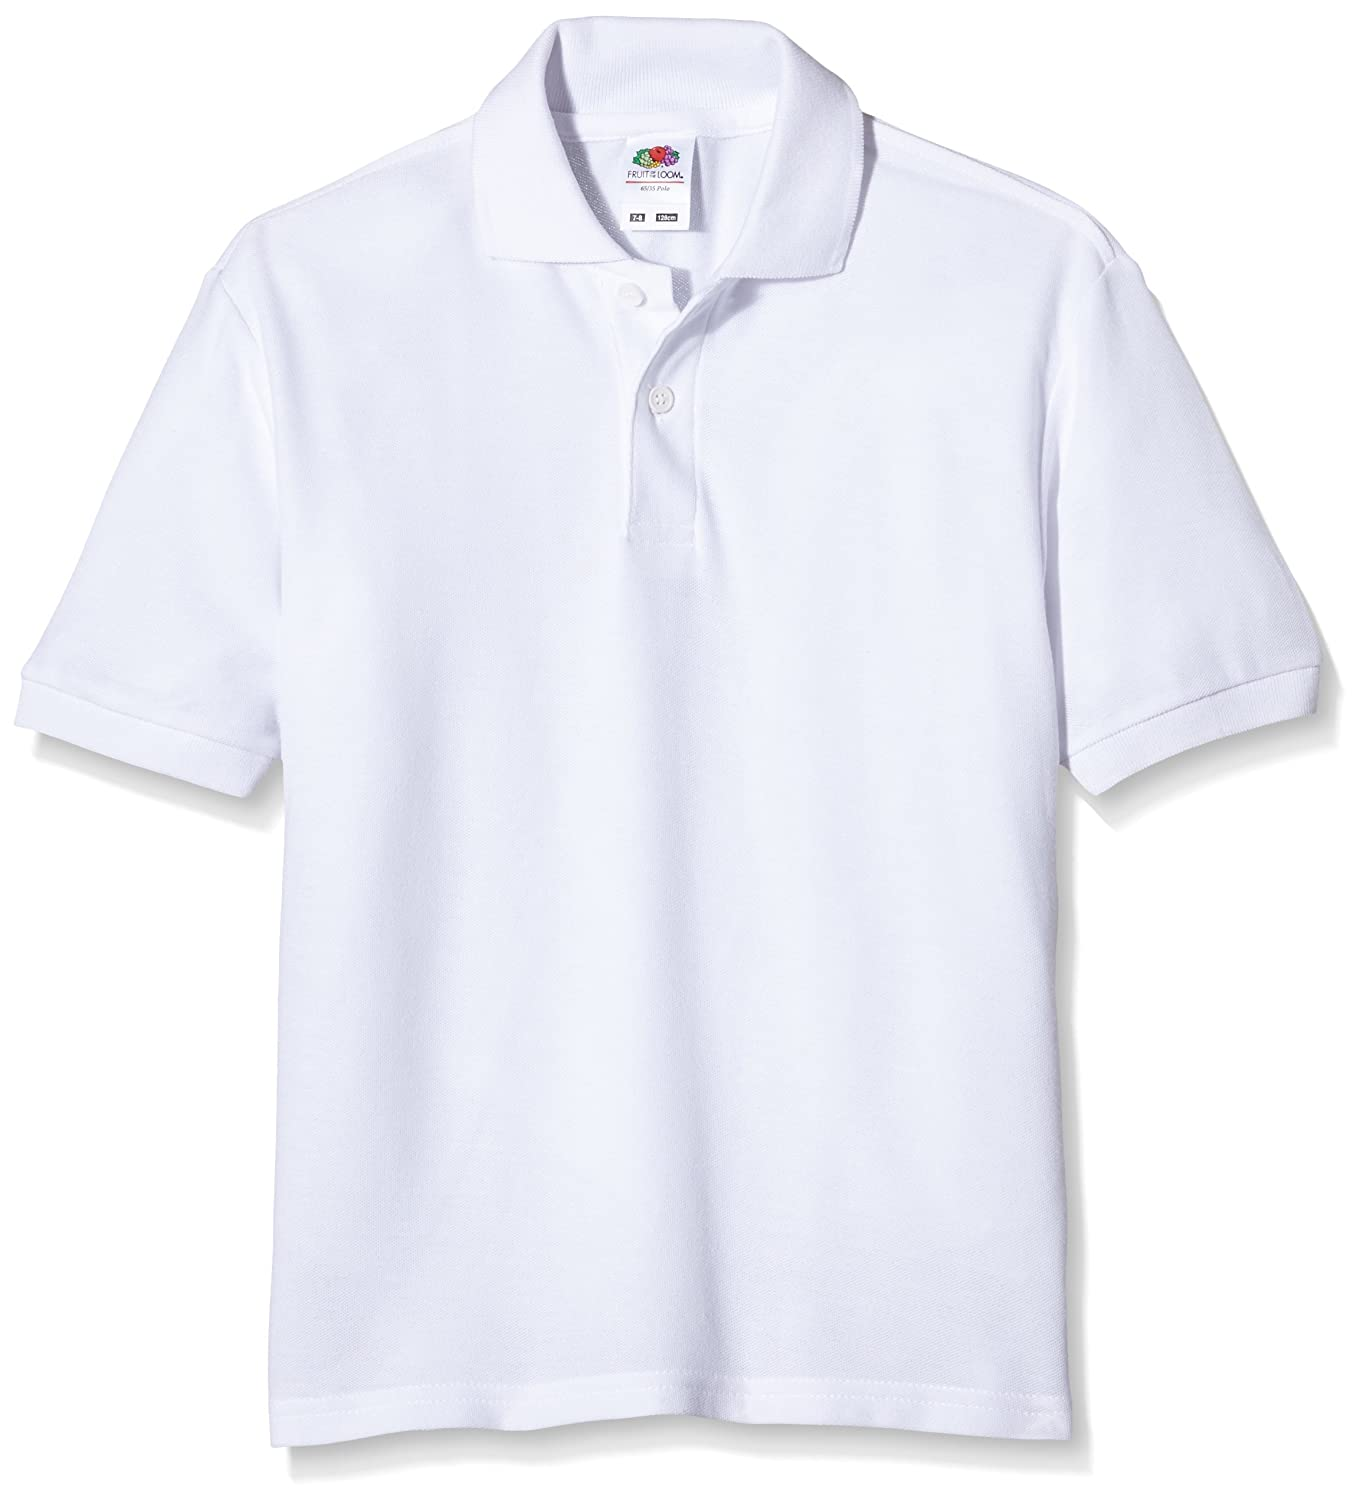 Fruit of the Loom childs 65/35 pique polo shirt White age 9 to 11 63-417-0